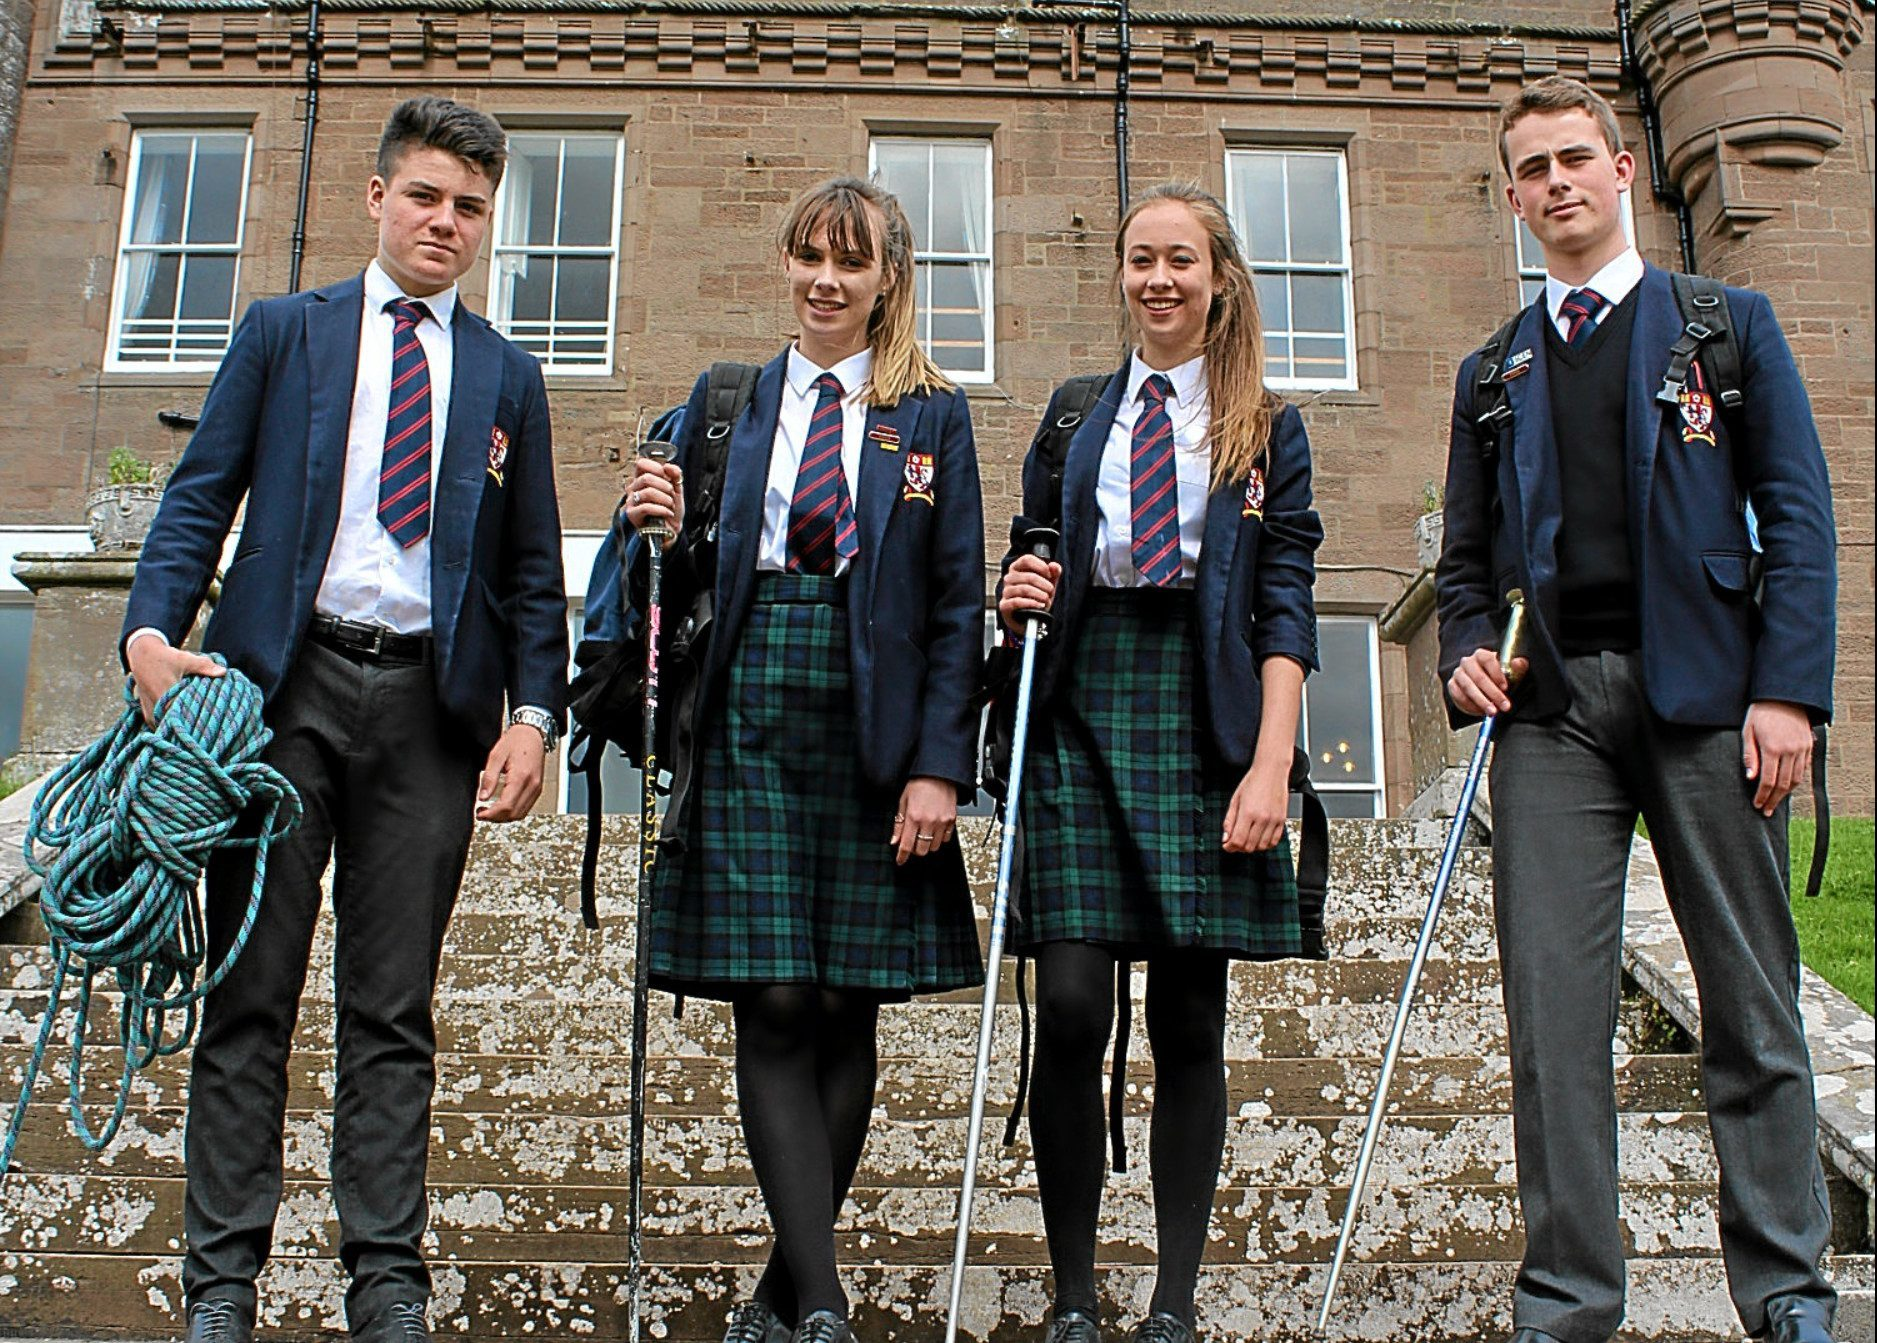 The pupils will take on the country's highest peak.